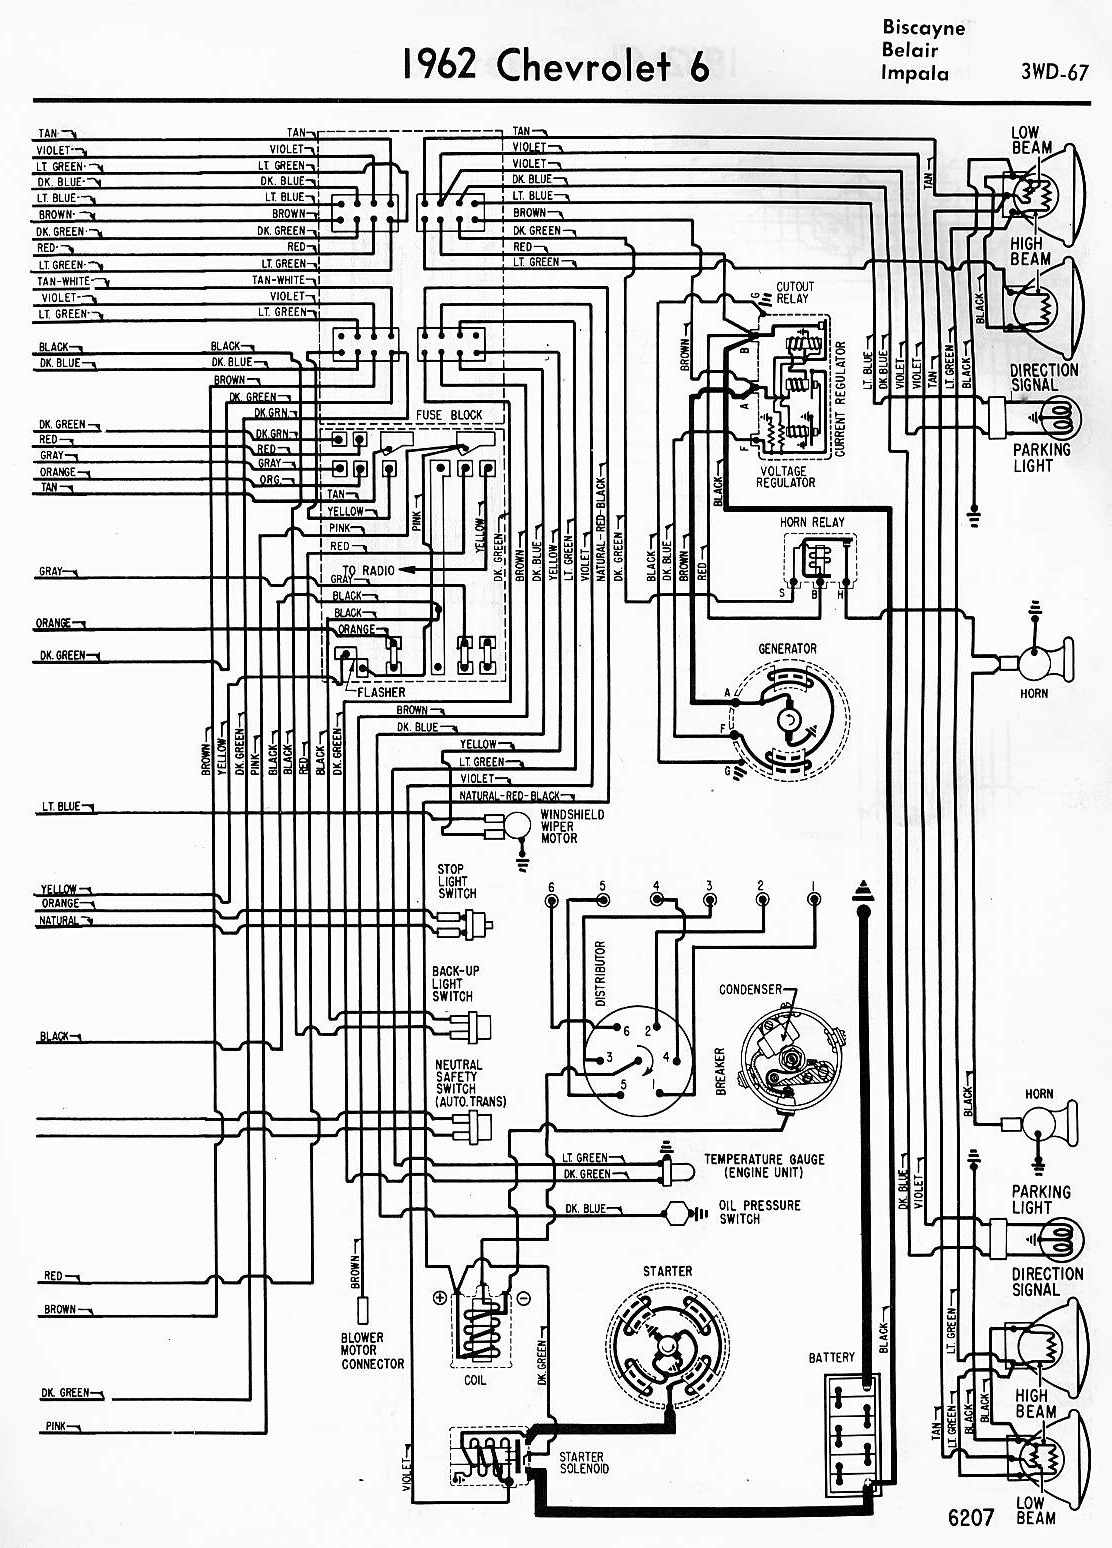 Electrical+Wiring+Diagram+Of+1964+Chevrolet+6 electrical wiring diagram of 1962 chevrolet 6 all about wiring  at alyssarenee.co